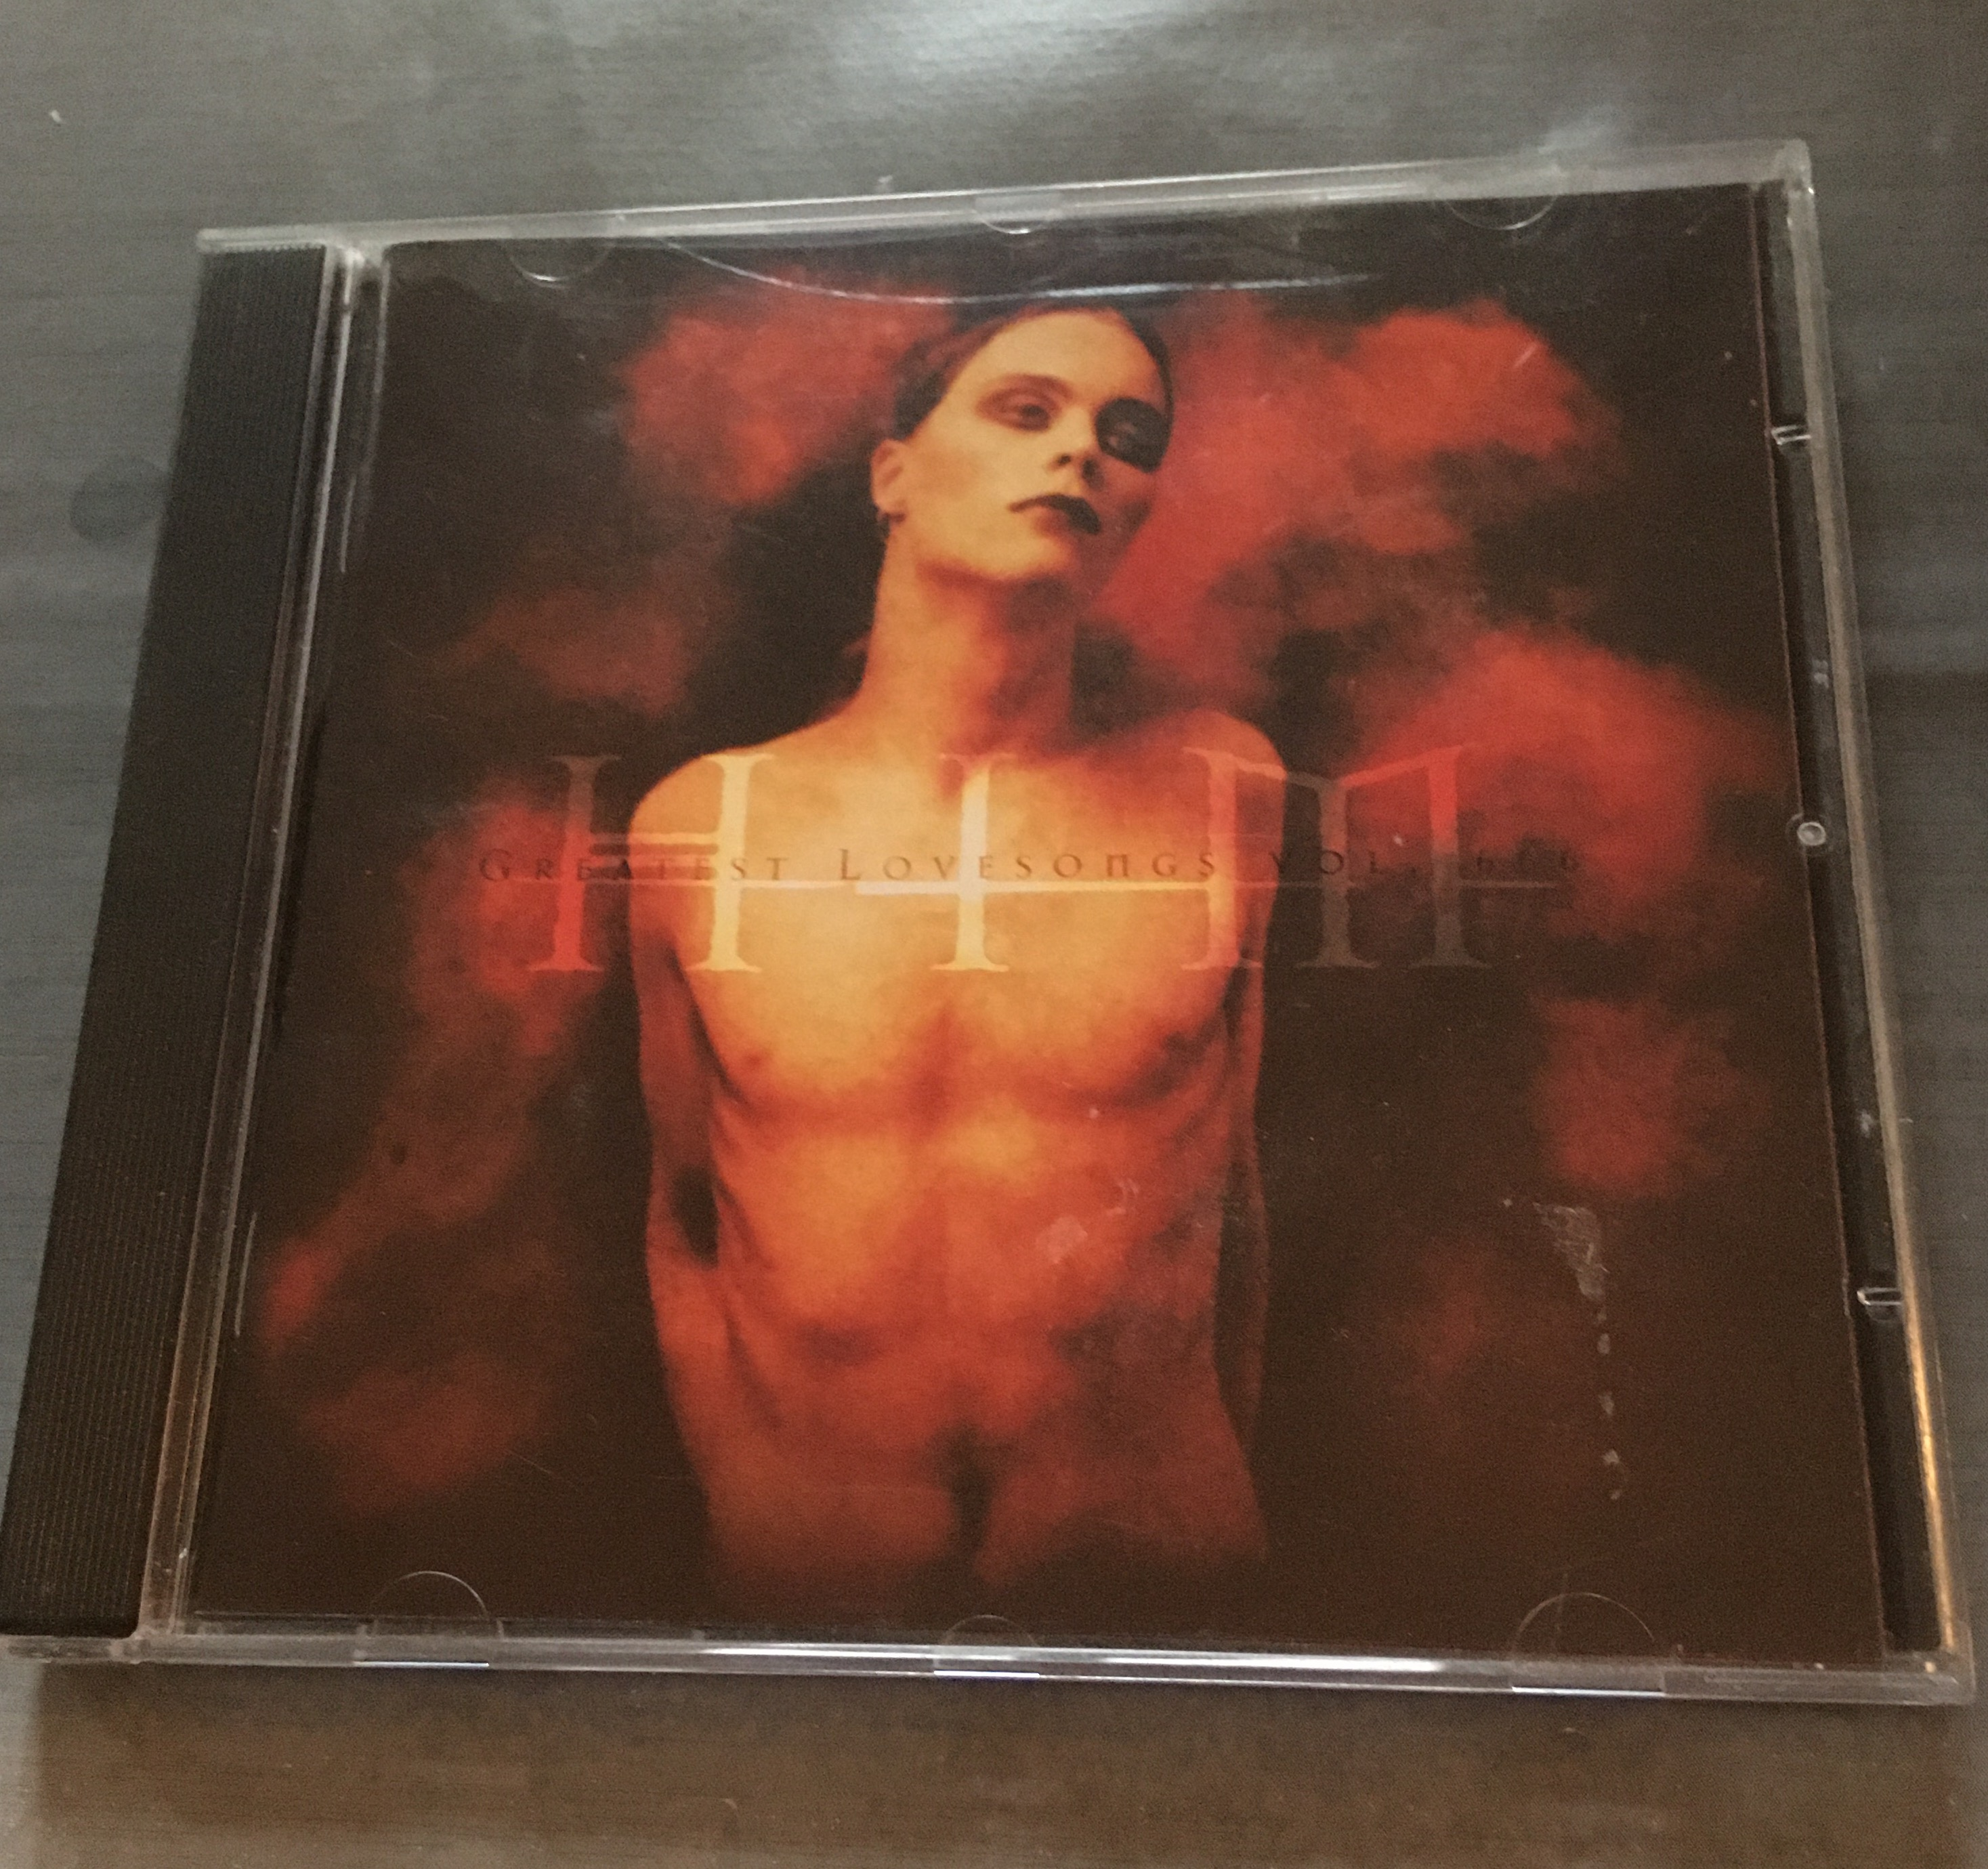 CD HIM - Greatest Love Songs kostenlos